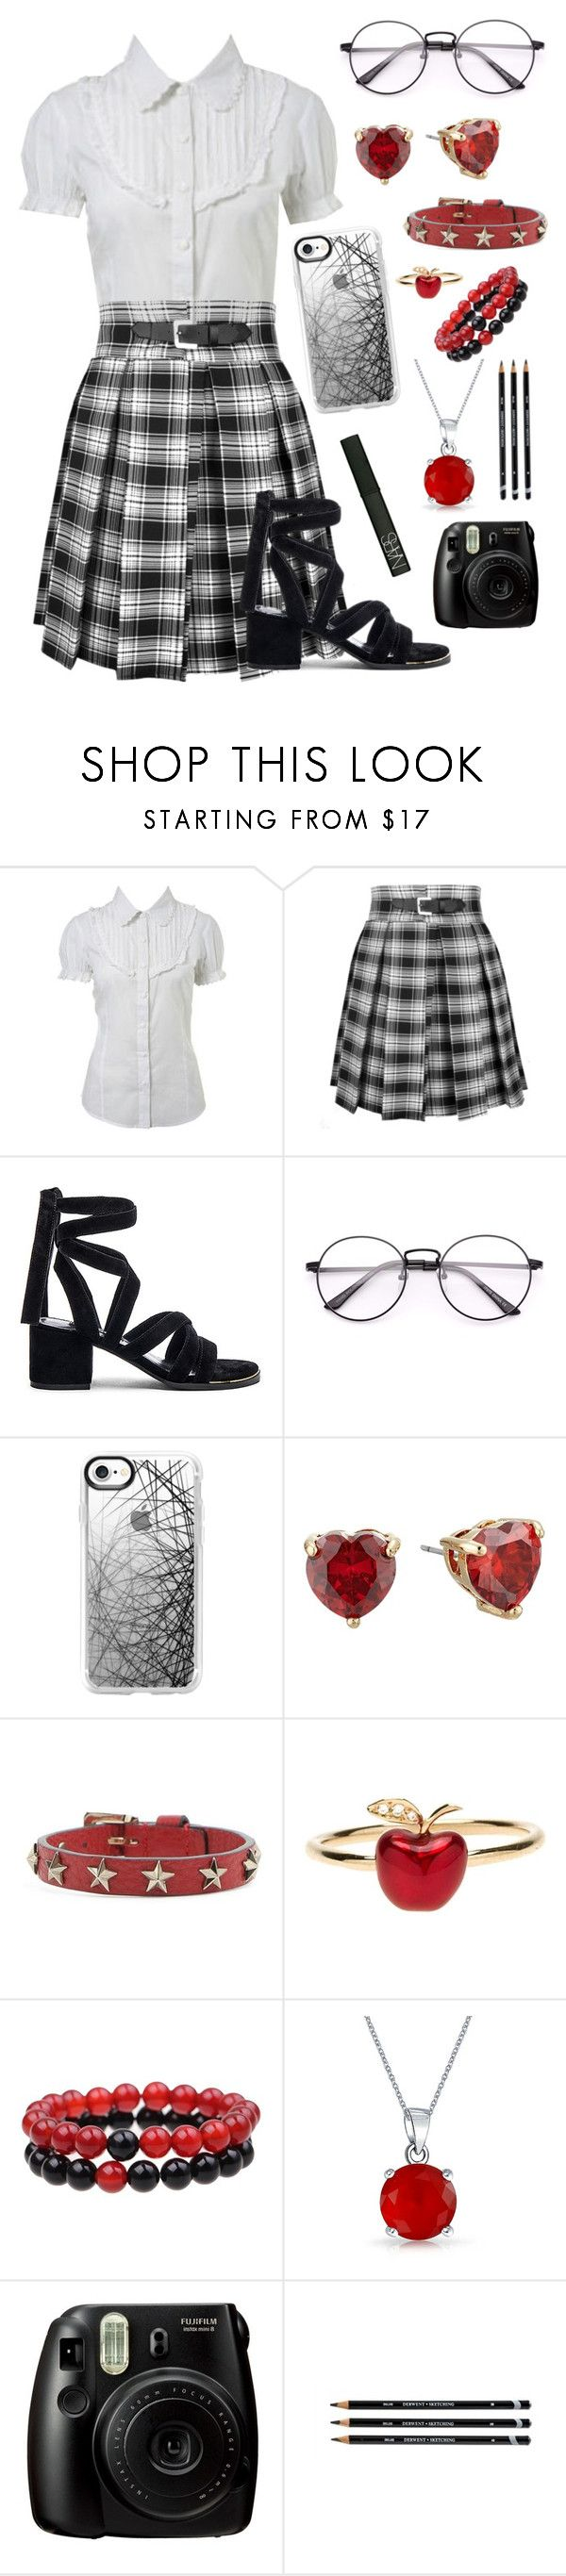 """""""Breathe"""" by kbelle28 ❤ liked on Polyvore featuring Miss Selfridge, Senso, Casetify, Betsey Johnson, RED Valentino, Alison Lou, Bling Jewelry, Fujifilm and NARS Cosmetics"""